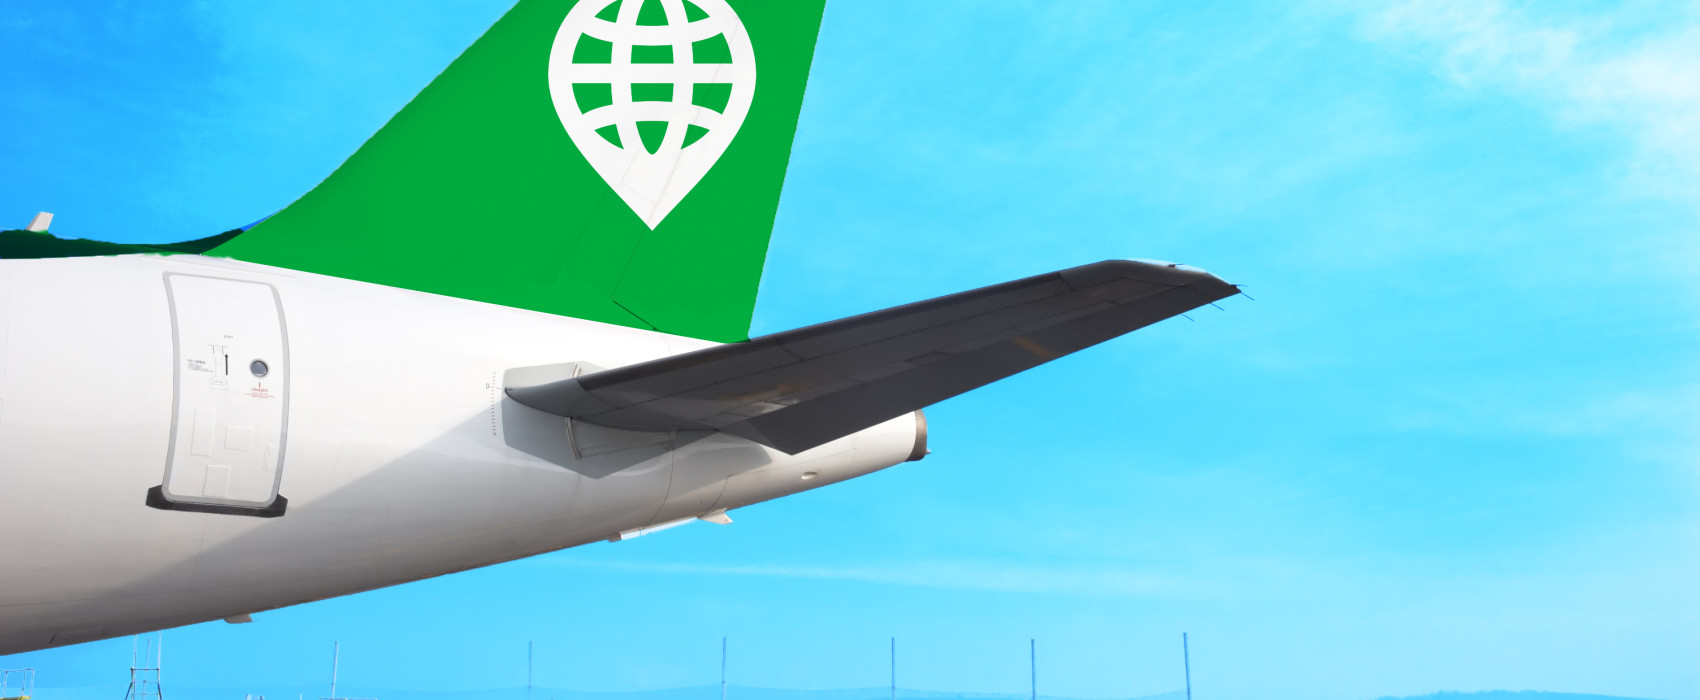 International Transportation Management - Air Freight Forwarder